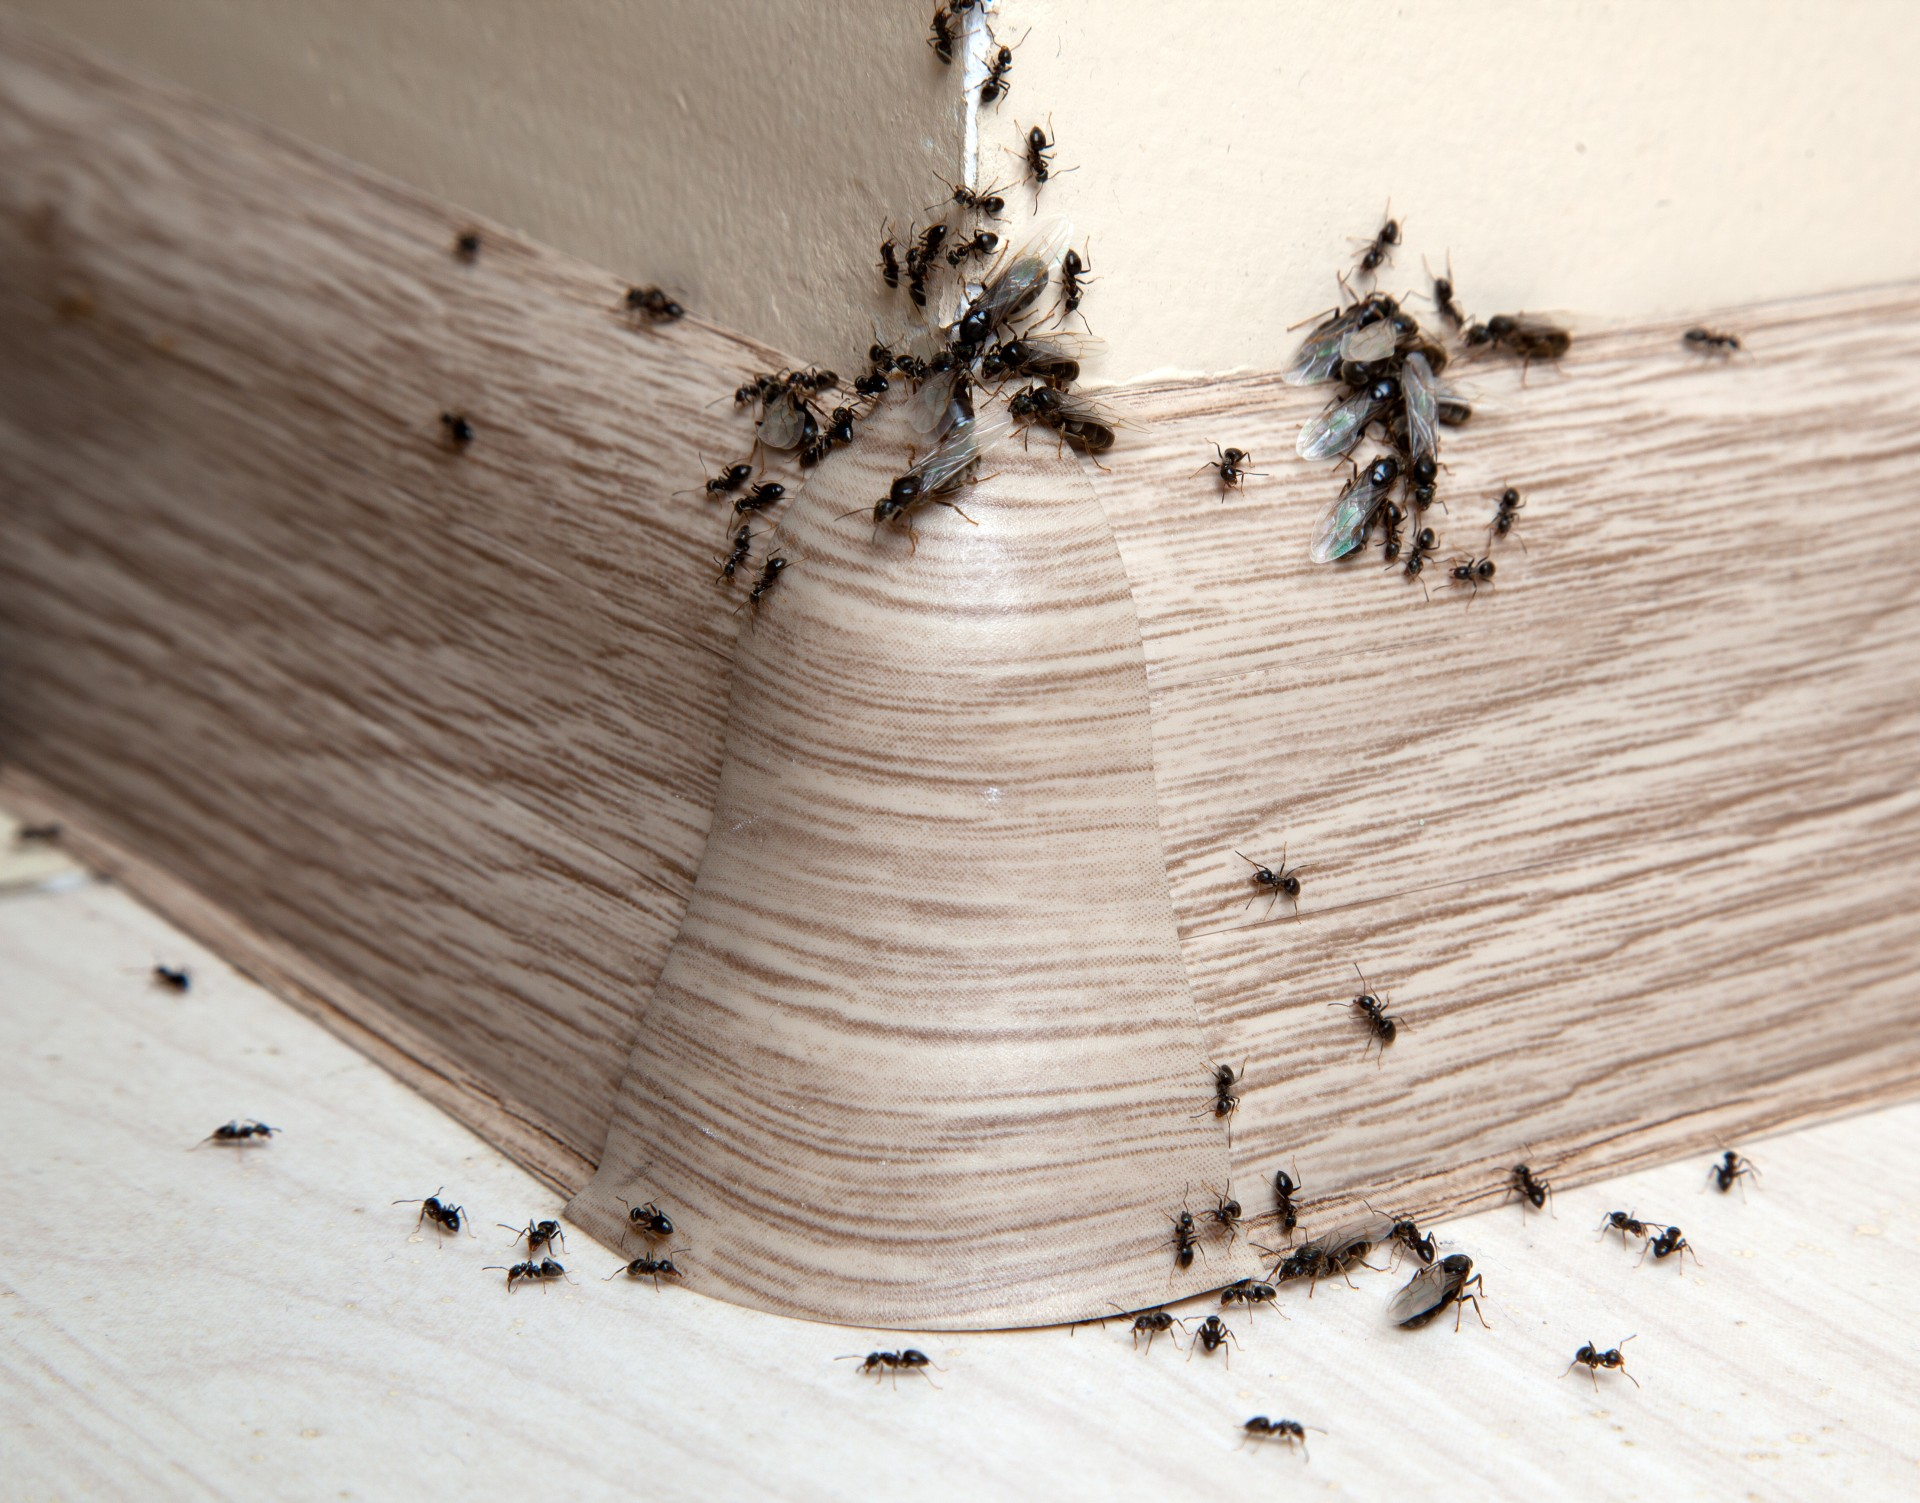 Ant Infestation, Pest Control in Tolworth, Berrylands, KT5. Call Now 020 8166 9746